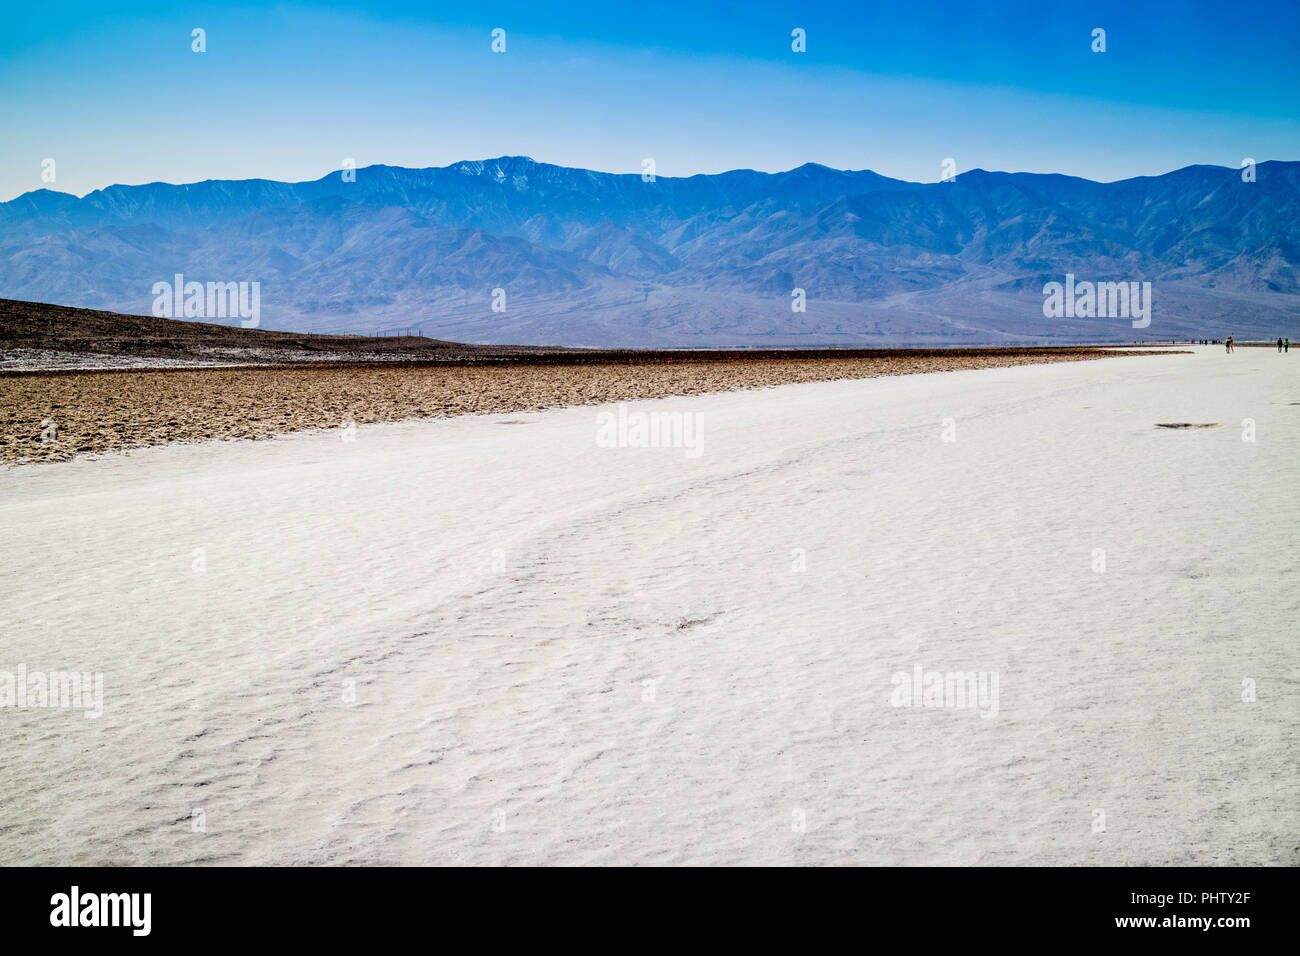 Mesquite Flat sand dunes in Death Valley National Park Stock Photo